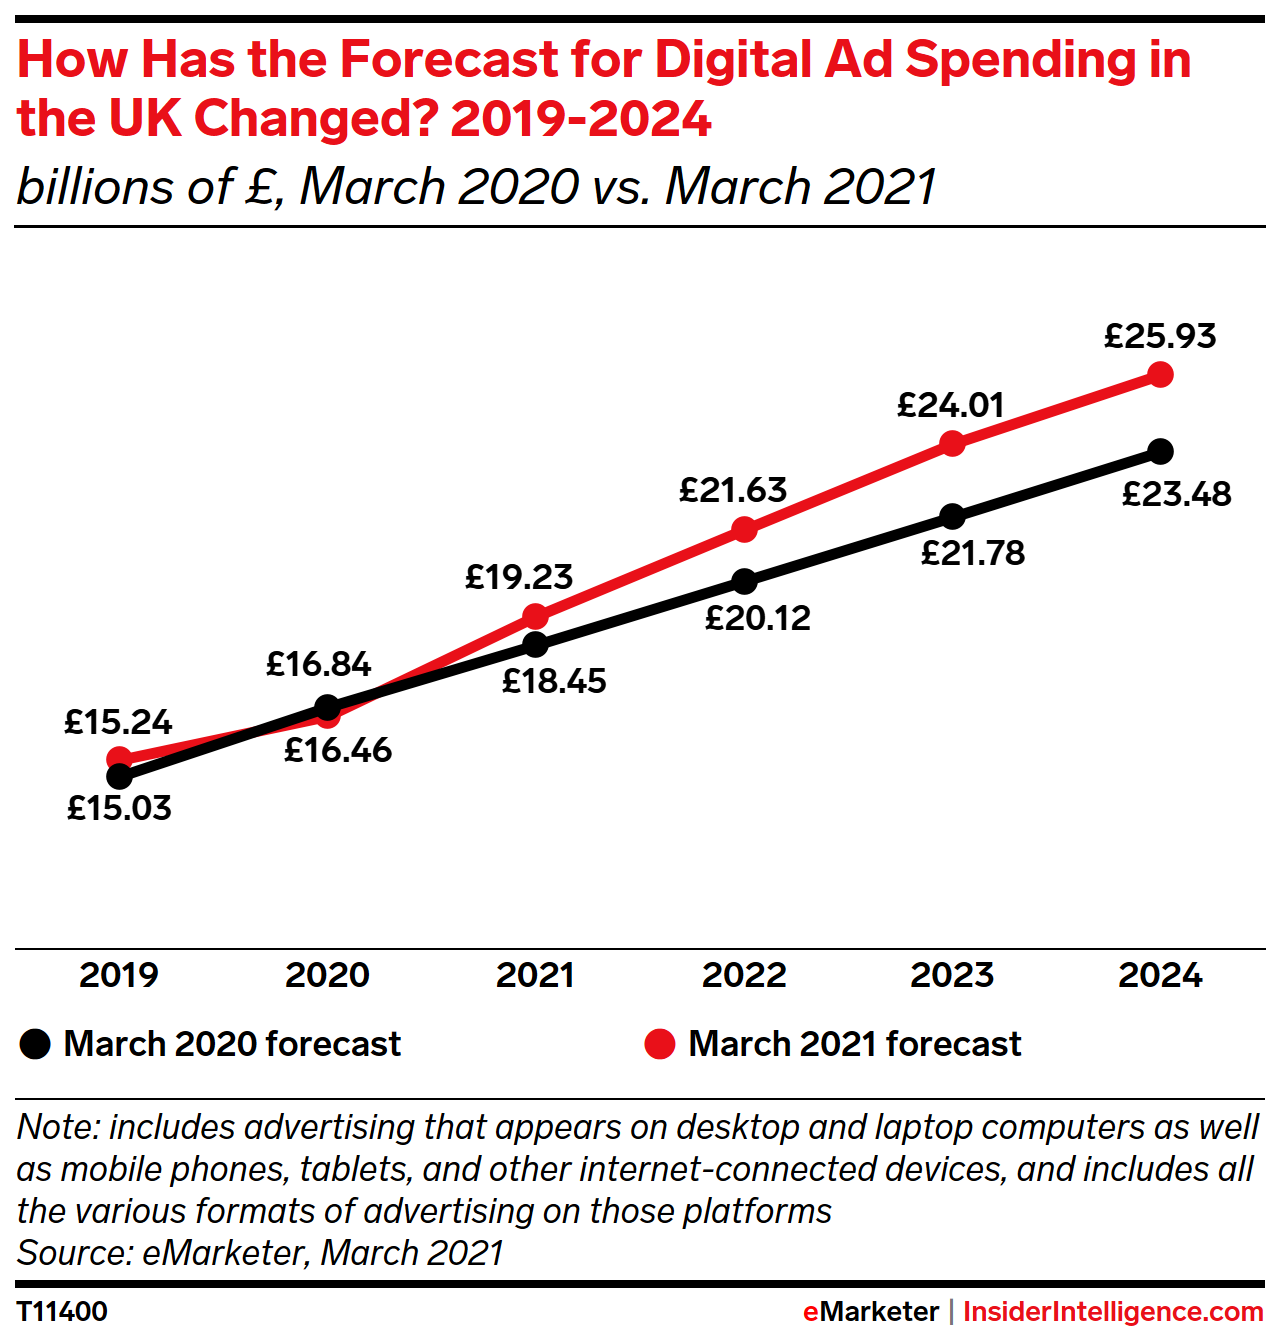 How has our forecast for digital ad spending in the UK changed? 2019-2024 (billions of £)